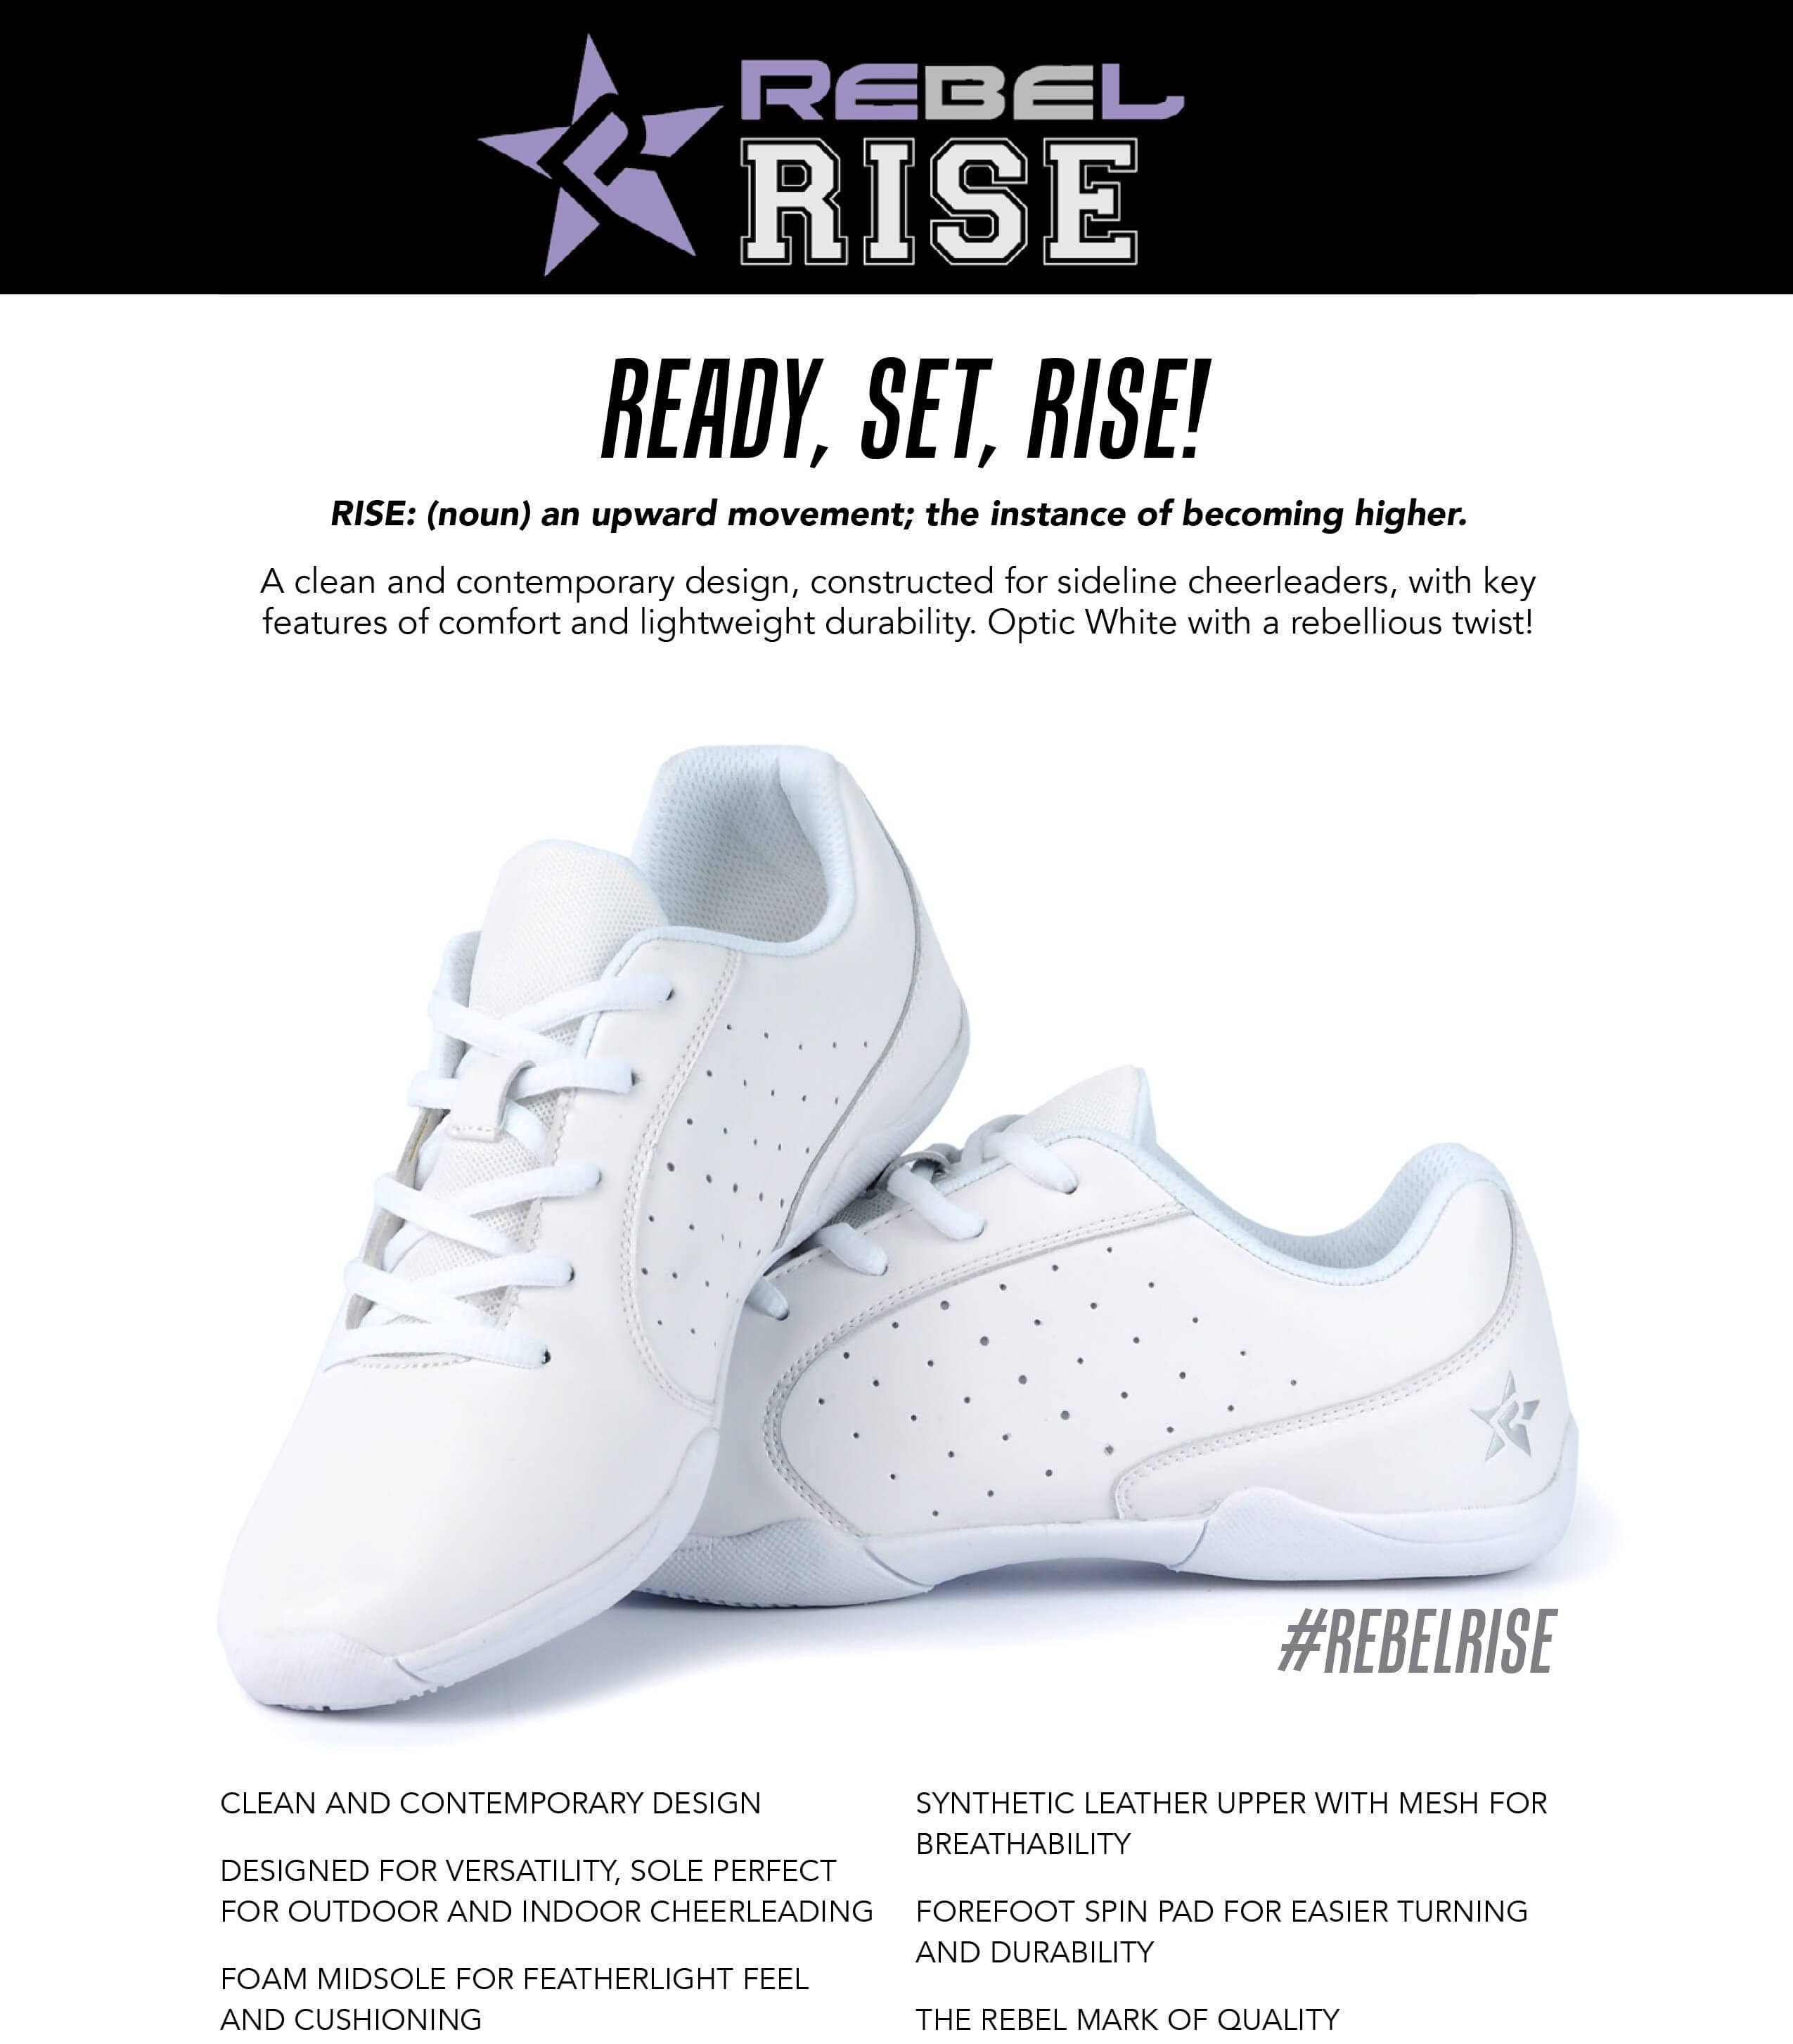 Rebel Rise cheer shoes